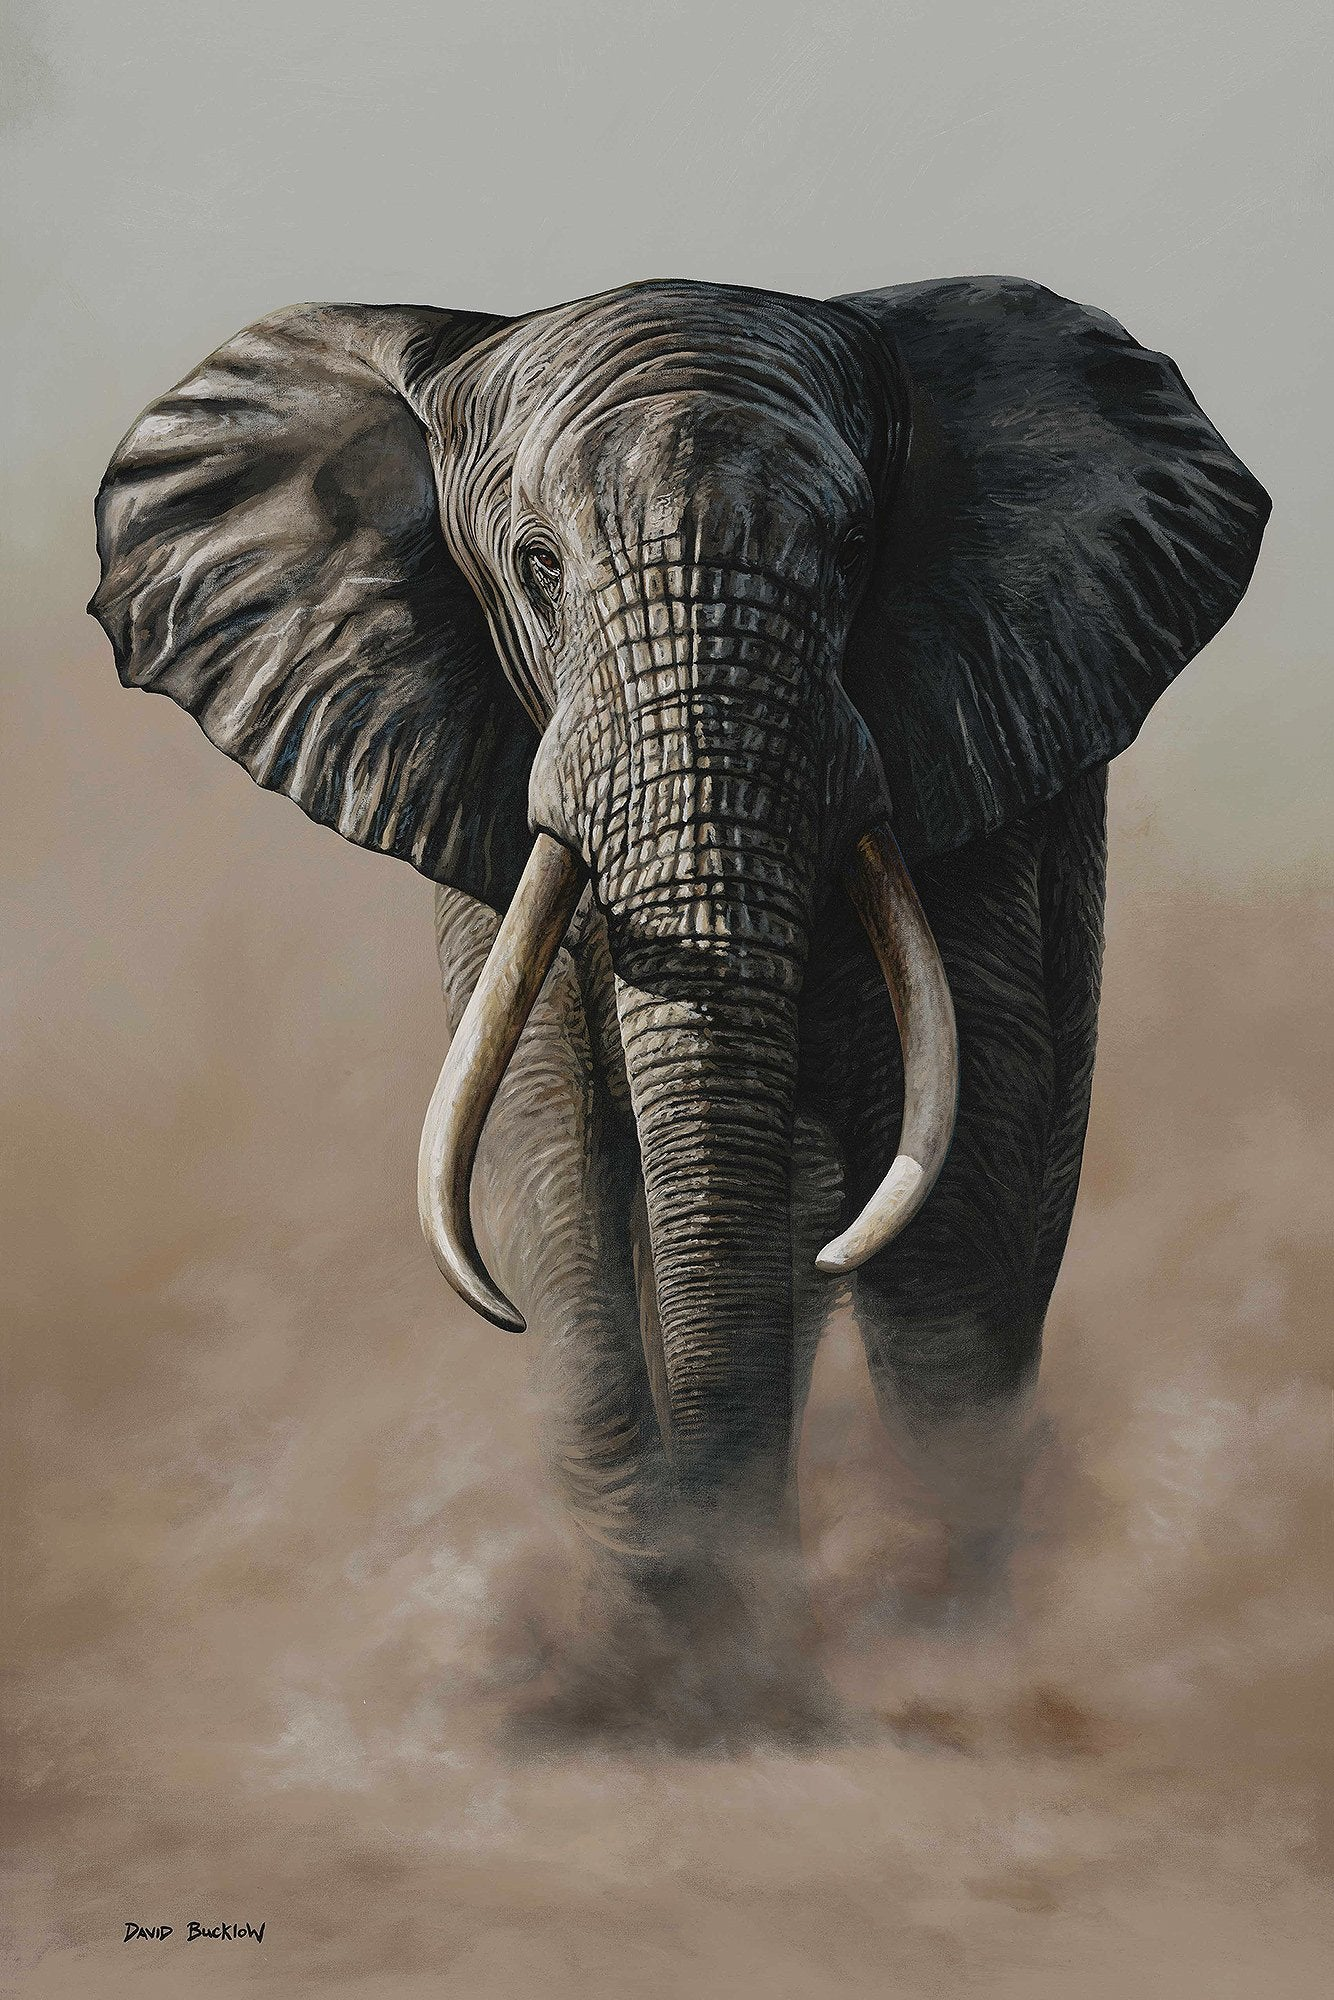 South African Limited Editions by David Bucklow - Madiba - Elephant - Fine Art Portfolio